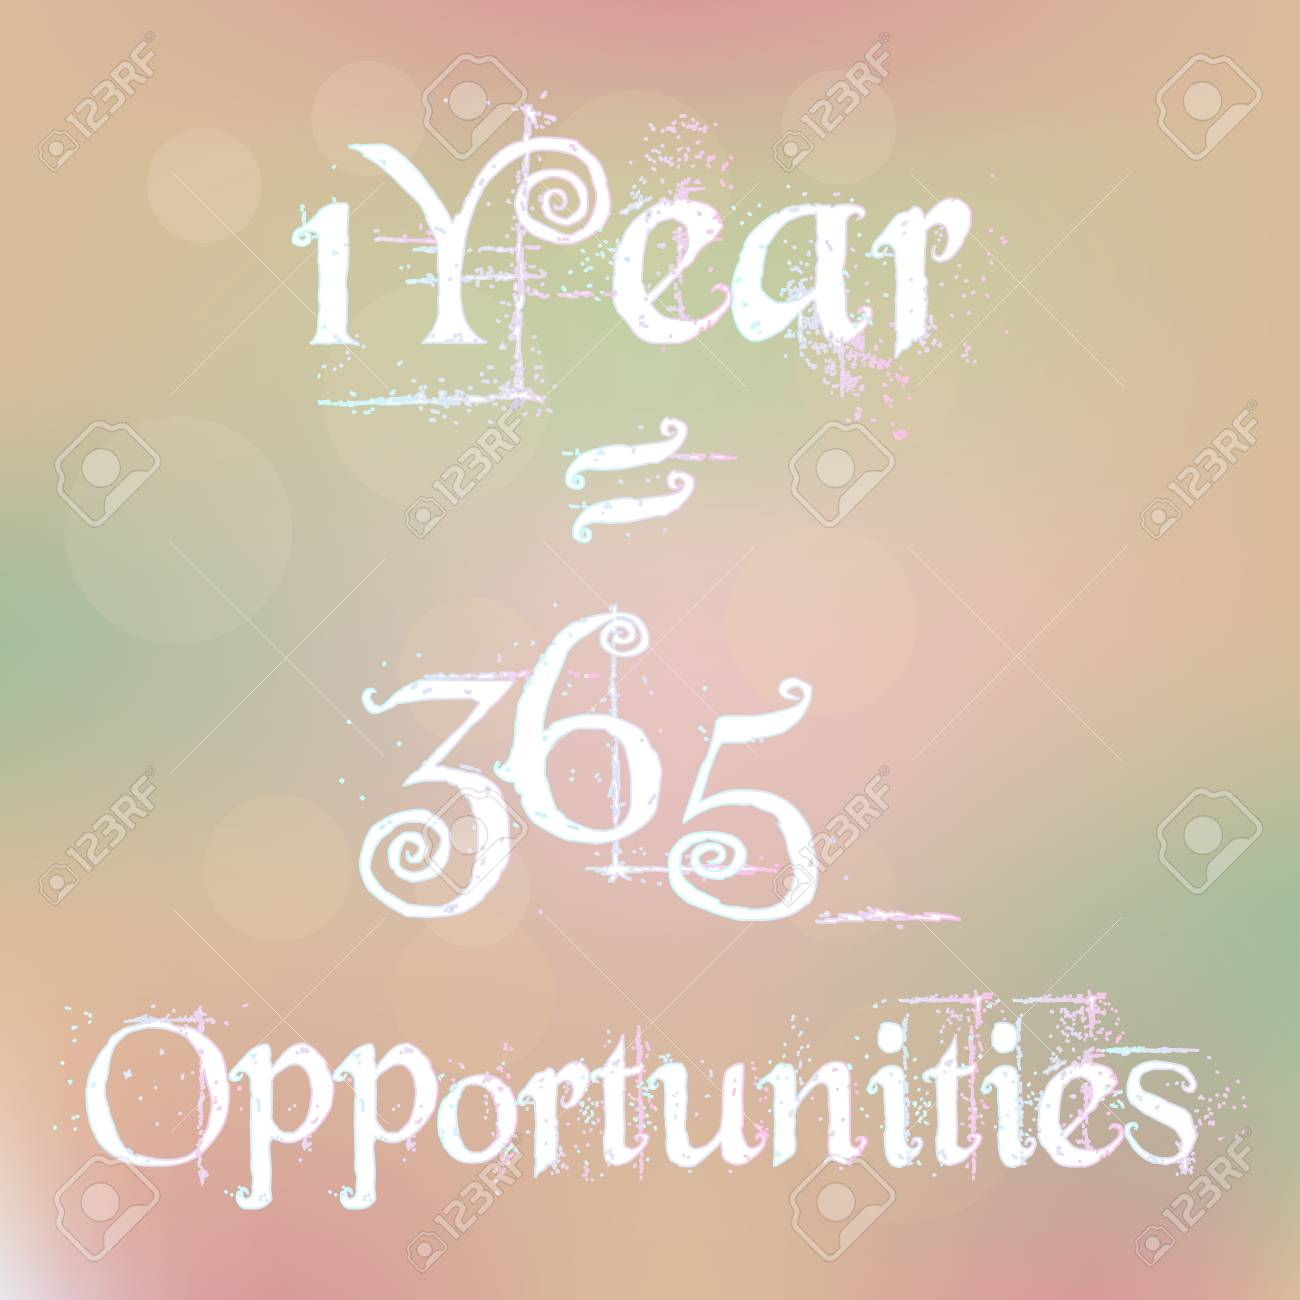 1 Year 1 Year 365 365 Opportunities Magic White Text on Blurred Background Abstract Motivation Quote Poster Typography Vector - 45485669